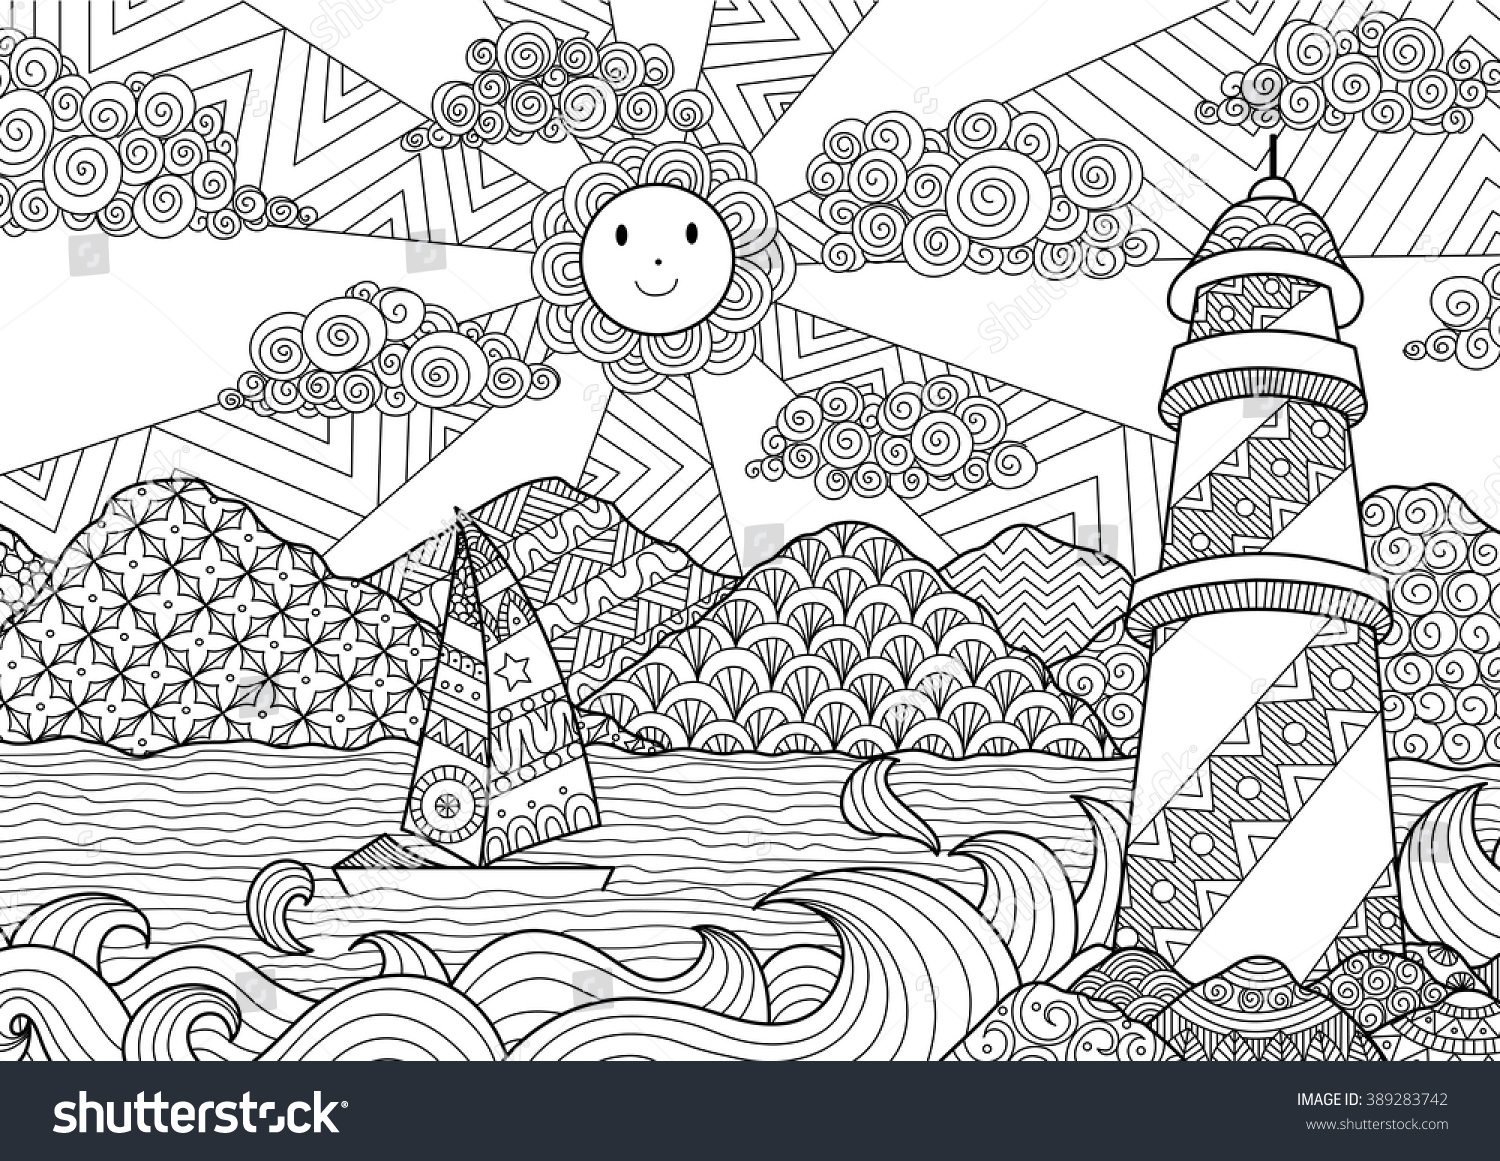 Colour Line Art Design : Seascape line art design coloring book stock vector